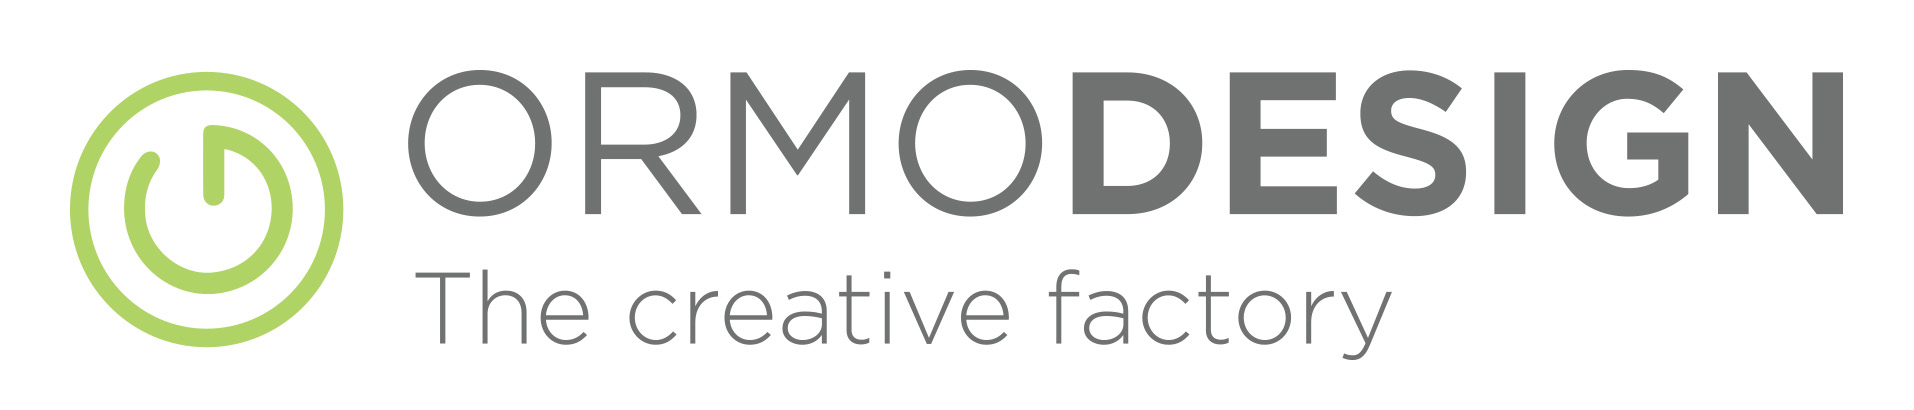 Ormodesign| The creative factory